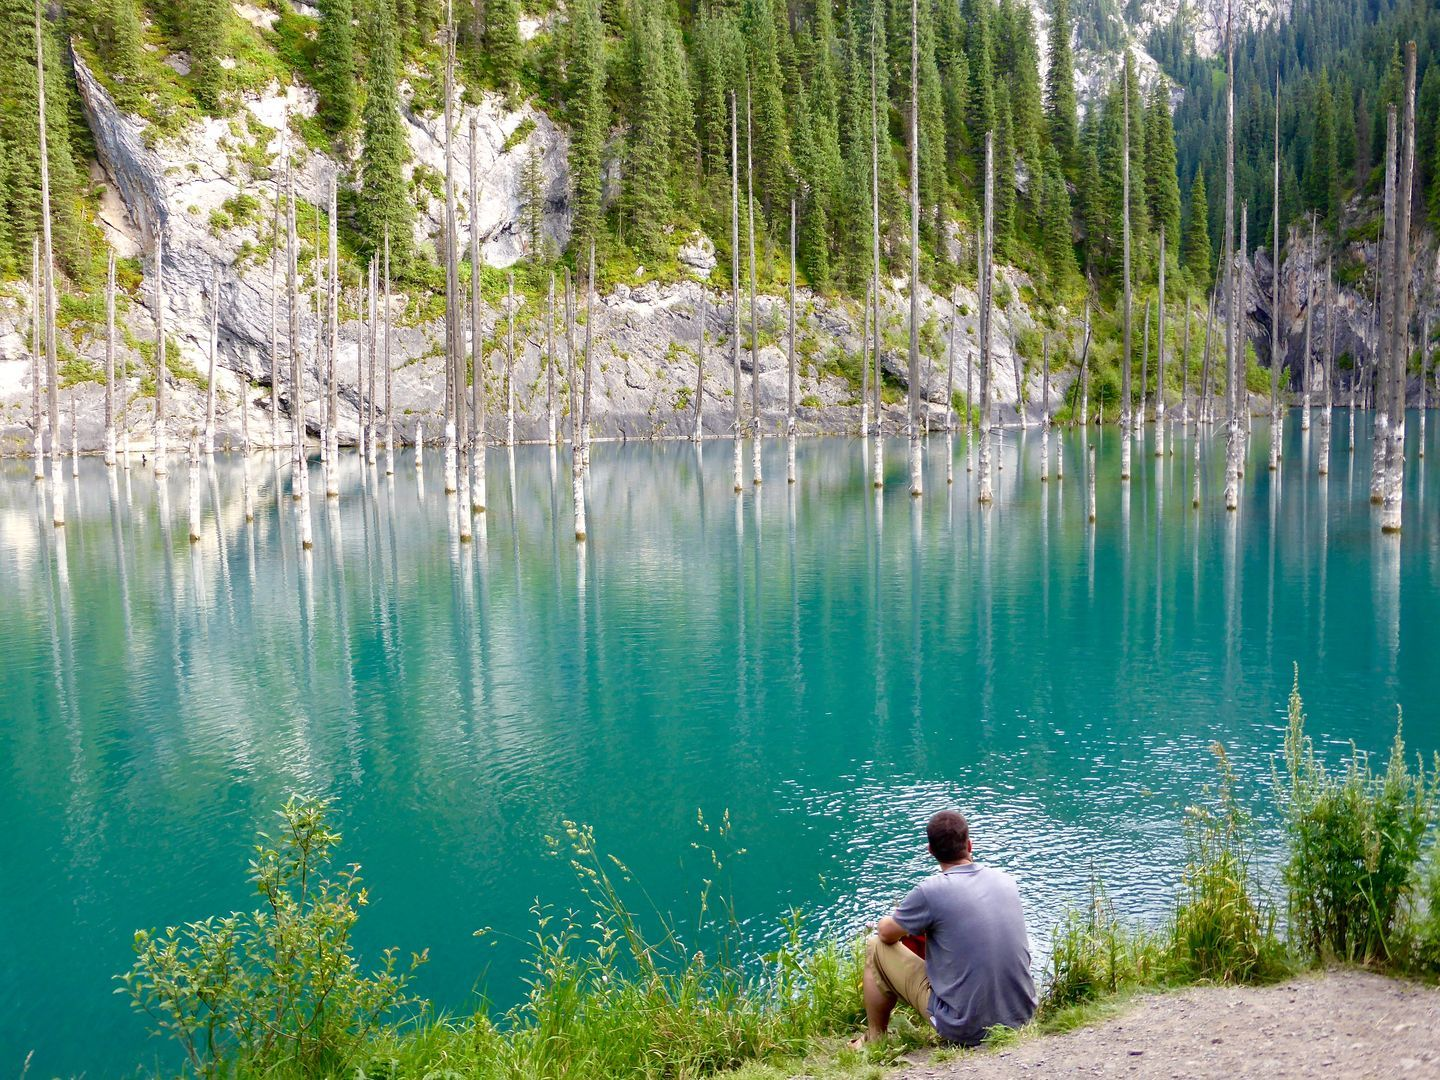 kaindy kazakhstan central asia, top places to see